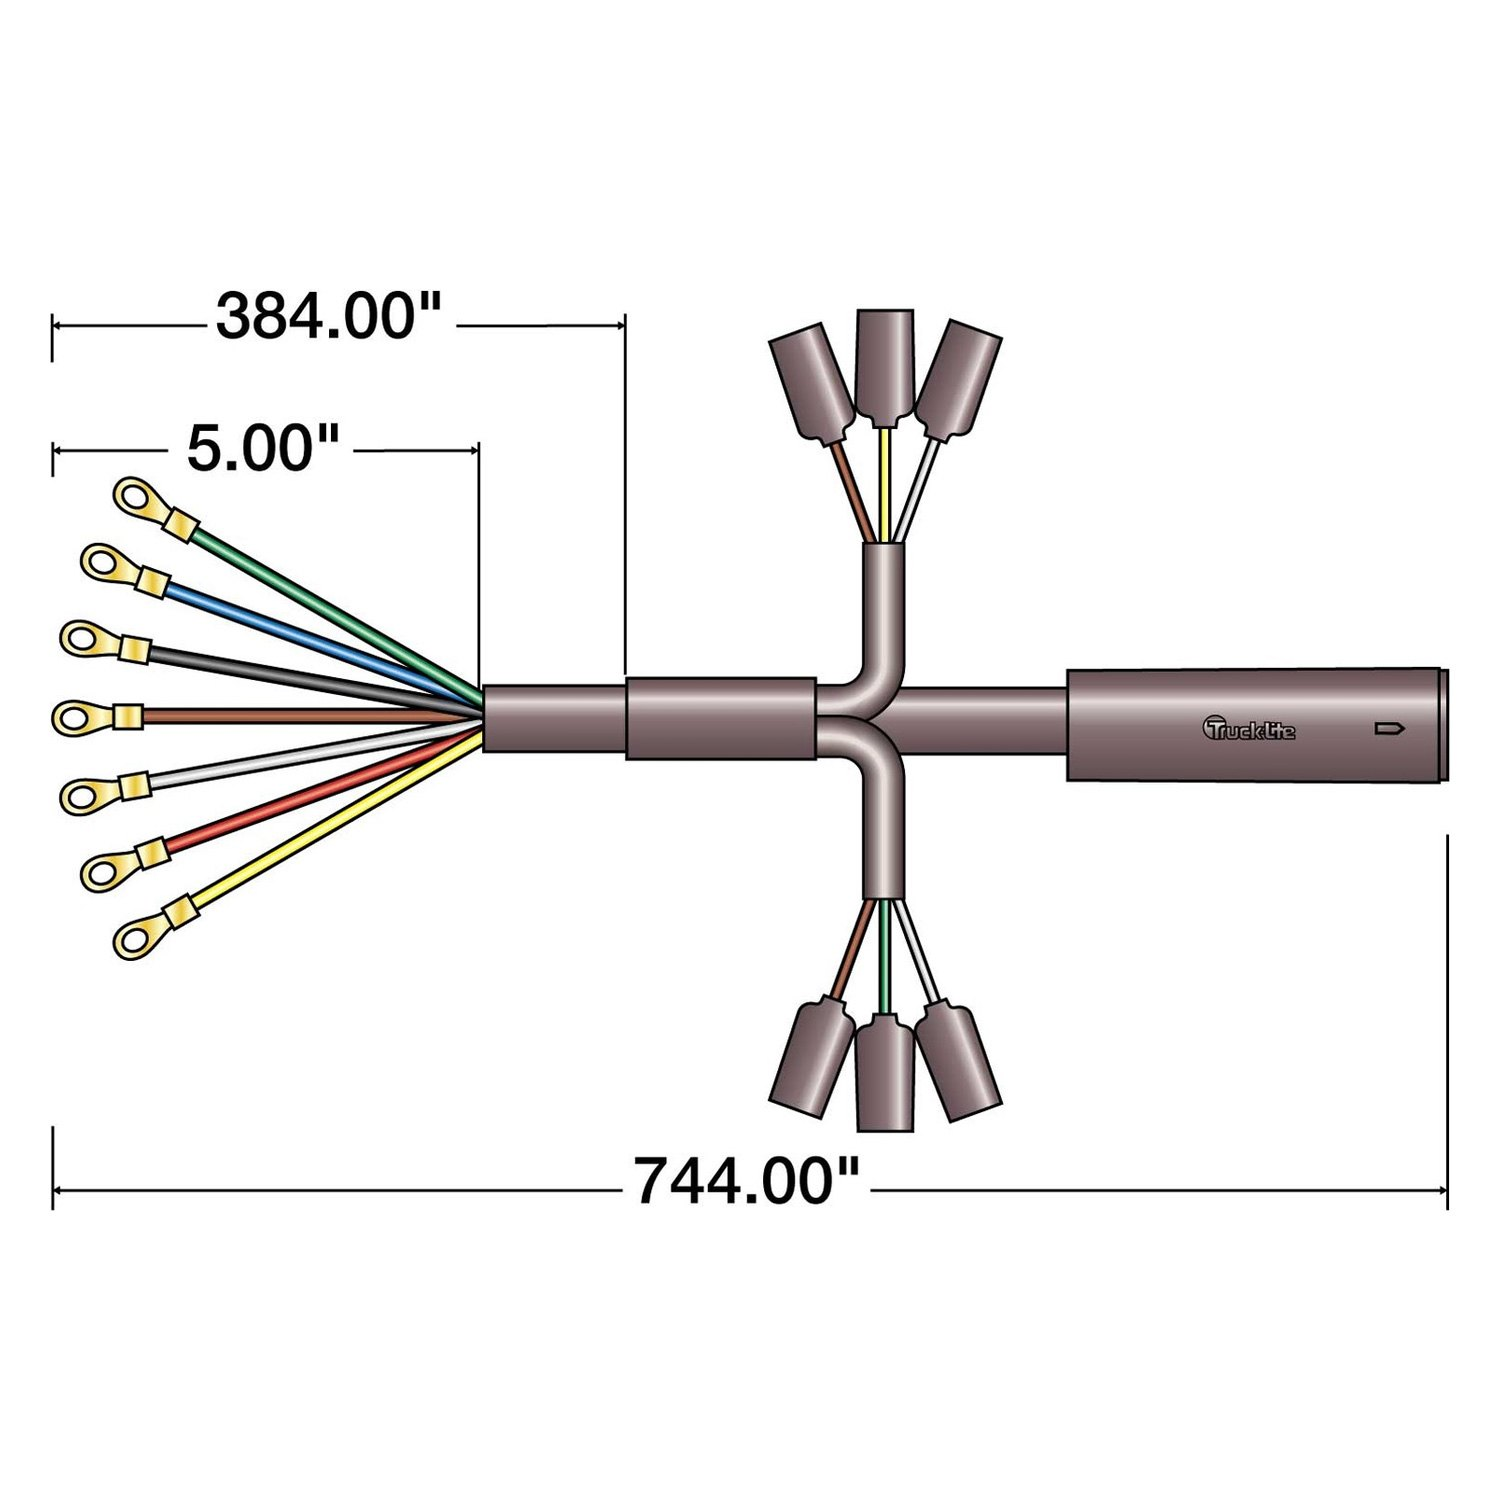 truck lite wiring diagram consort template 88750 88 series 744 quot 7 plug main cable